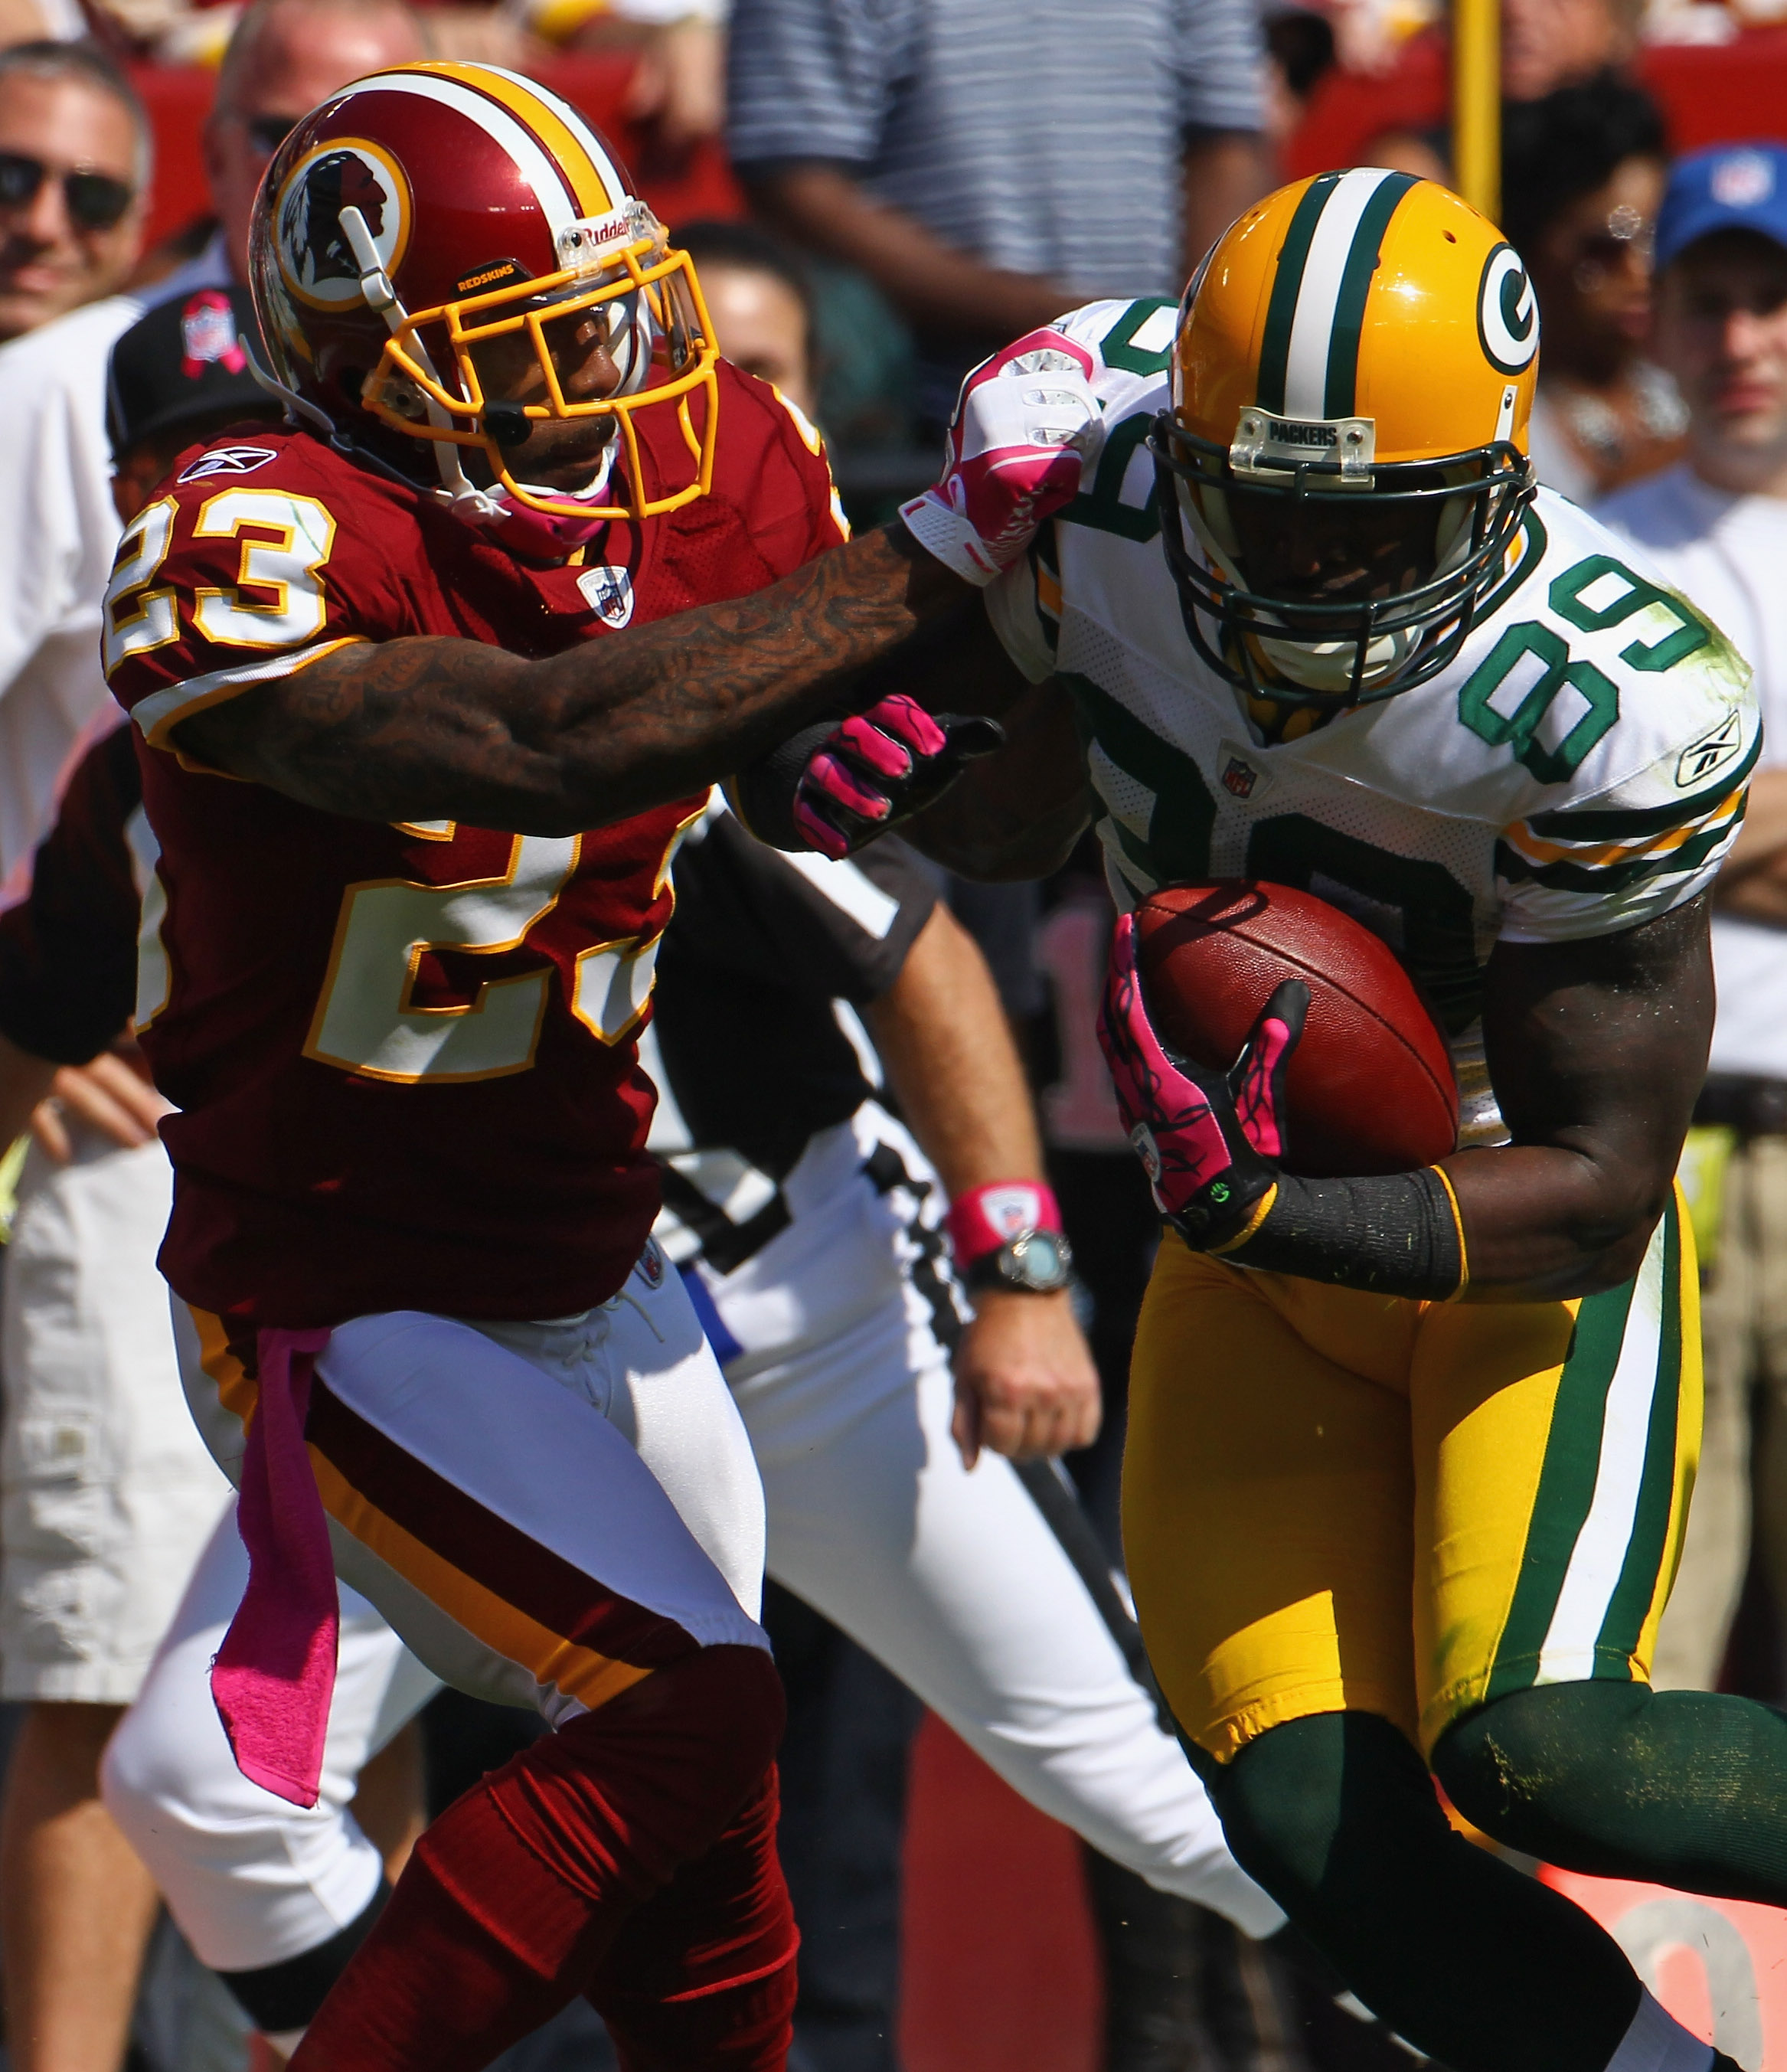 LANDOVER, MD - OCTOBER 10: Wide receiver James Jones #89 of the Green Bay Packers is tackled by cornerback DeAngelo Hall #23 the Washington Redskins at FedExField on October 10, 2010 in Landover, Maryland.  (Photo by Win McNamee/Getty Images)